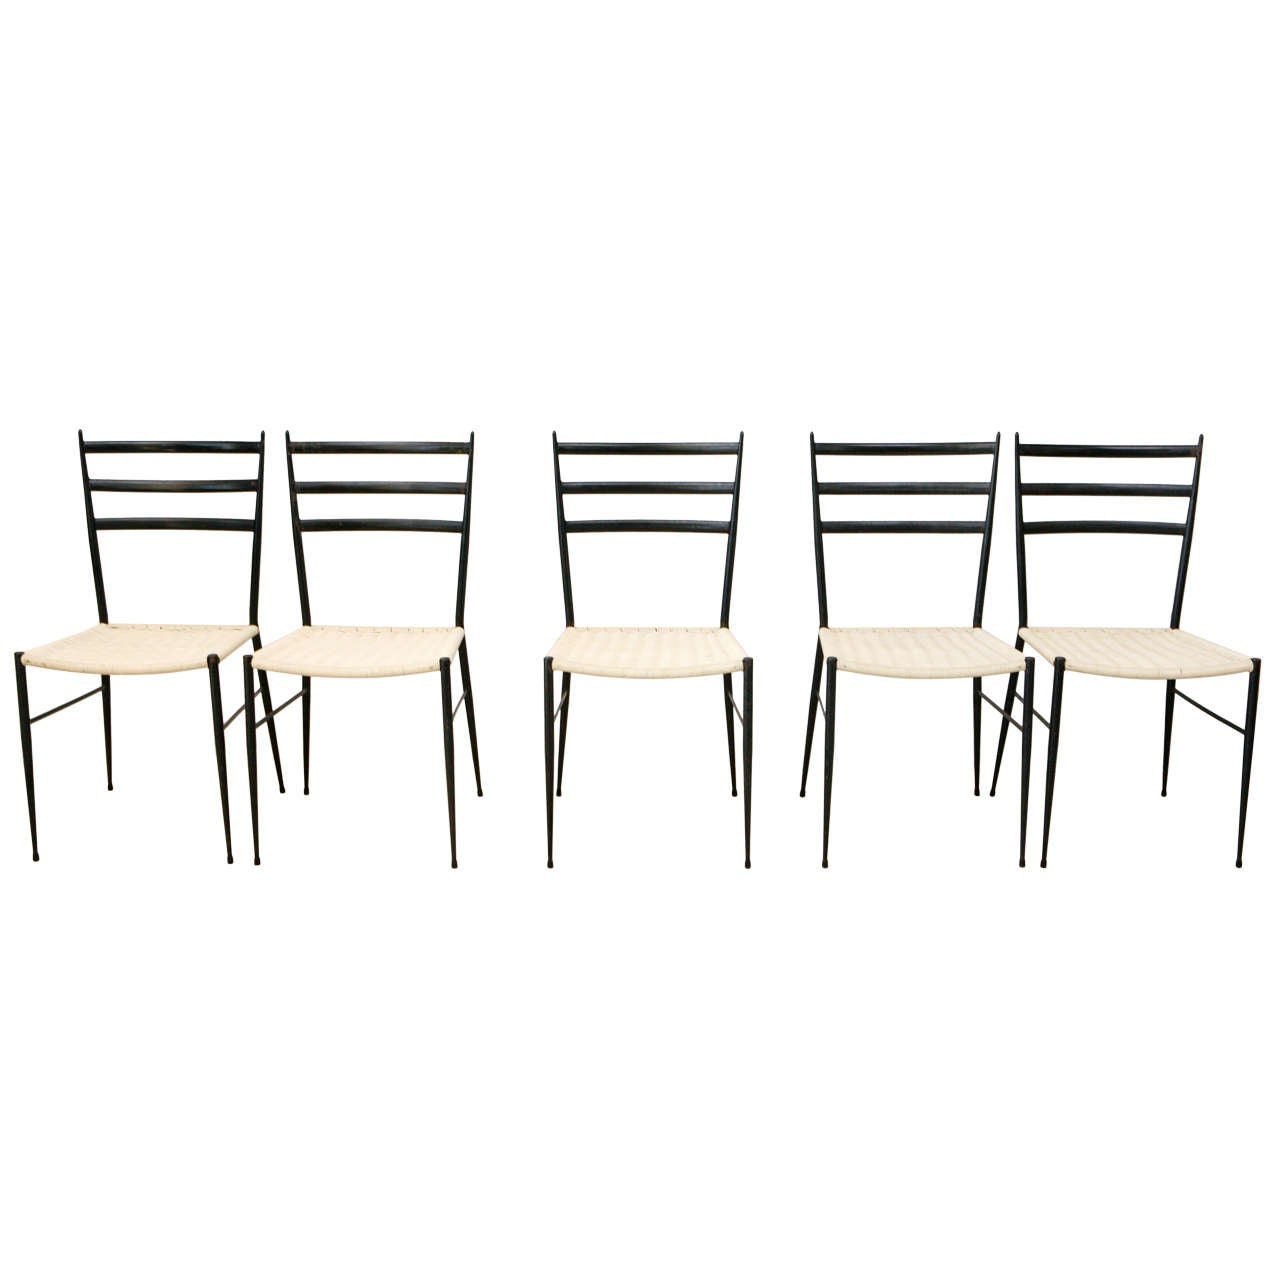 Set Of 12 Superleggera Chairs In The Style Of Gio Ponti At